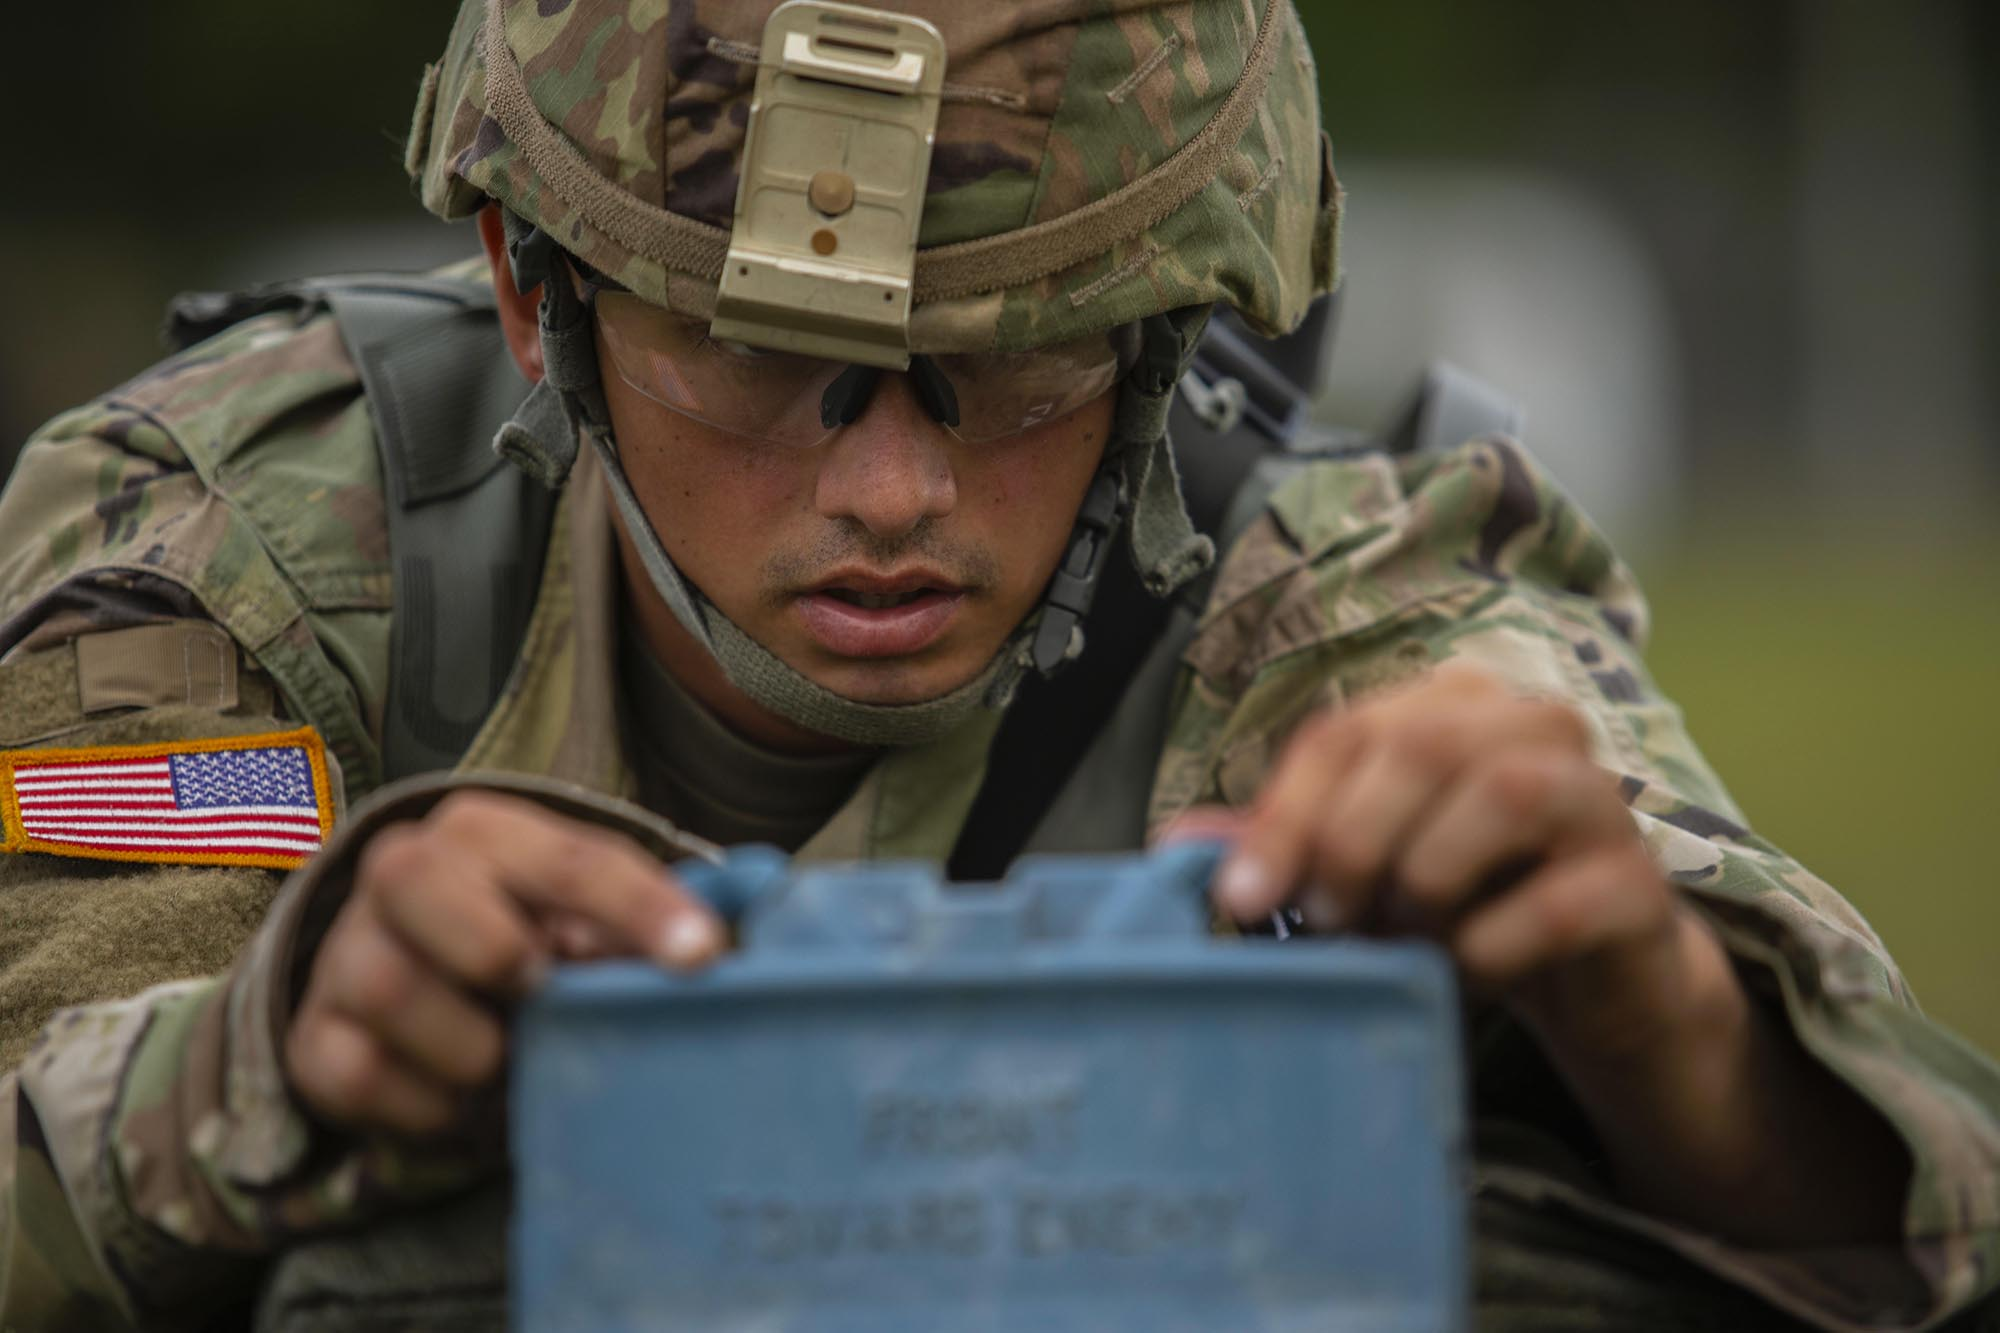 Sgt. Jose Galva Diaz sets up a training M18 Claymore Mine on a multi-event simulation lane during the 2020 U.S. Army Reserve Best Warrior Competition at Fort McCoy, Wis., Sept. 6, 2020. (Spc. Olivia Cowart/Army Reserve)